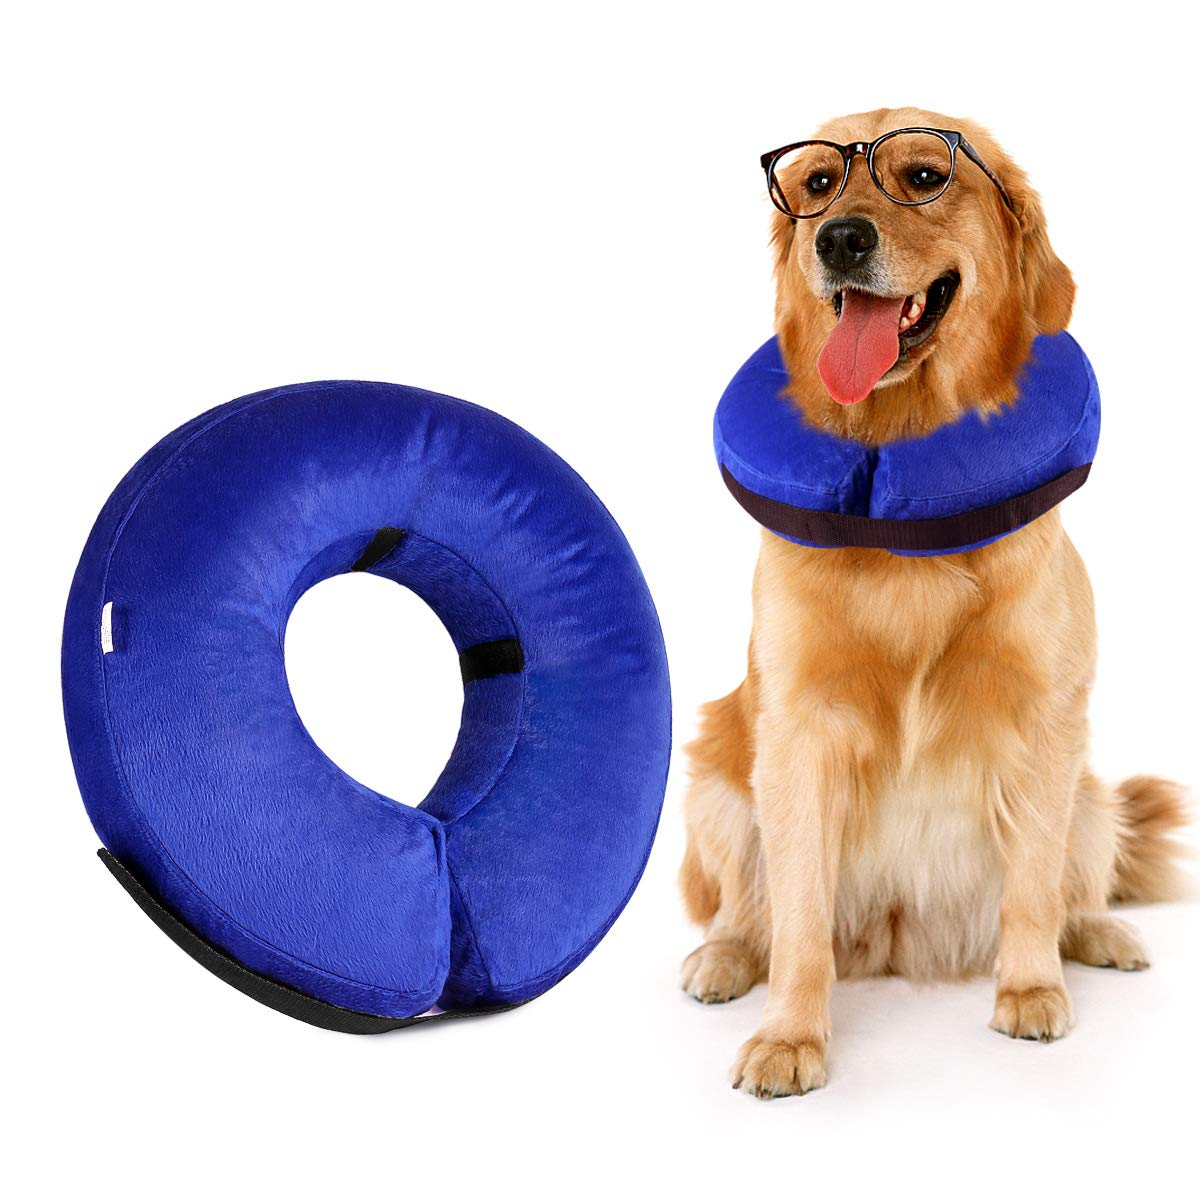 Vitorun Dog Cone Collar, Protective Inflatable Collar for Dogs and Cats - Pet Recovery Collar Does Not Block Vision E-Collar (Large) by Vitorun